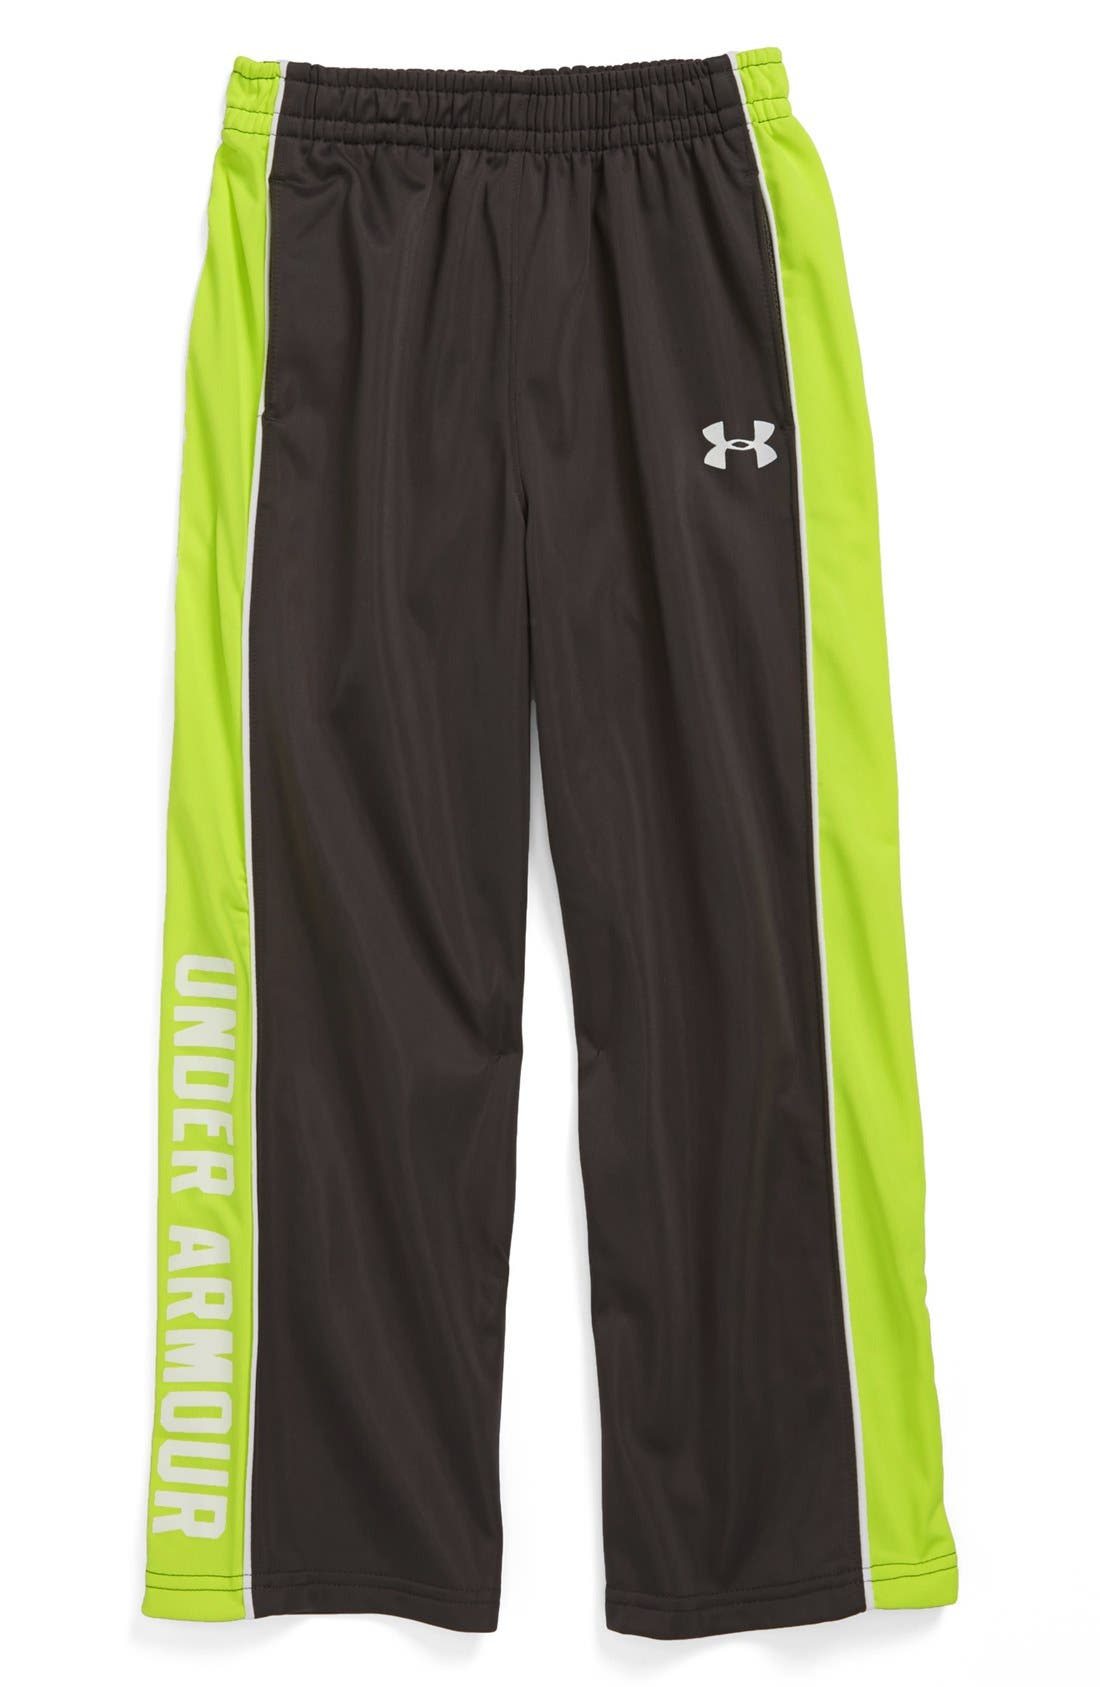 Alternate Image 1 Selected - Under Armour 'Brawler' Pants (Little Boys)